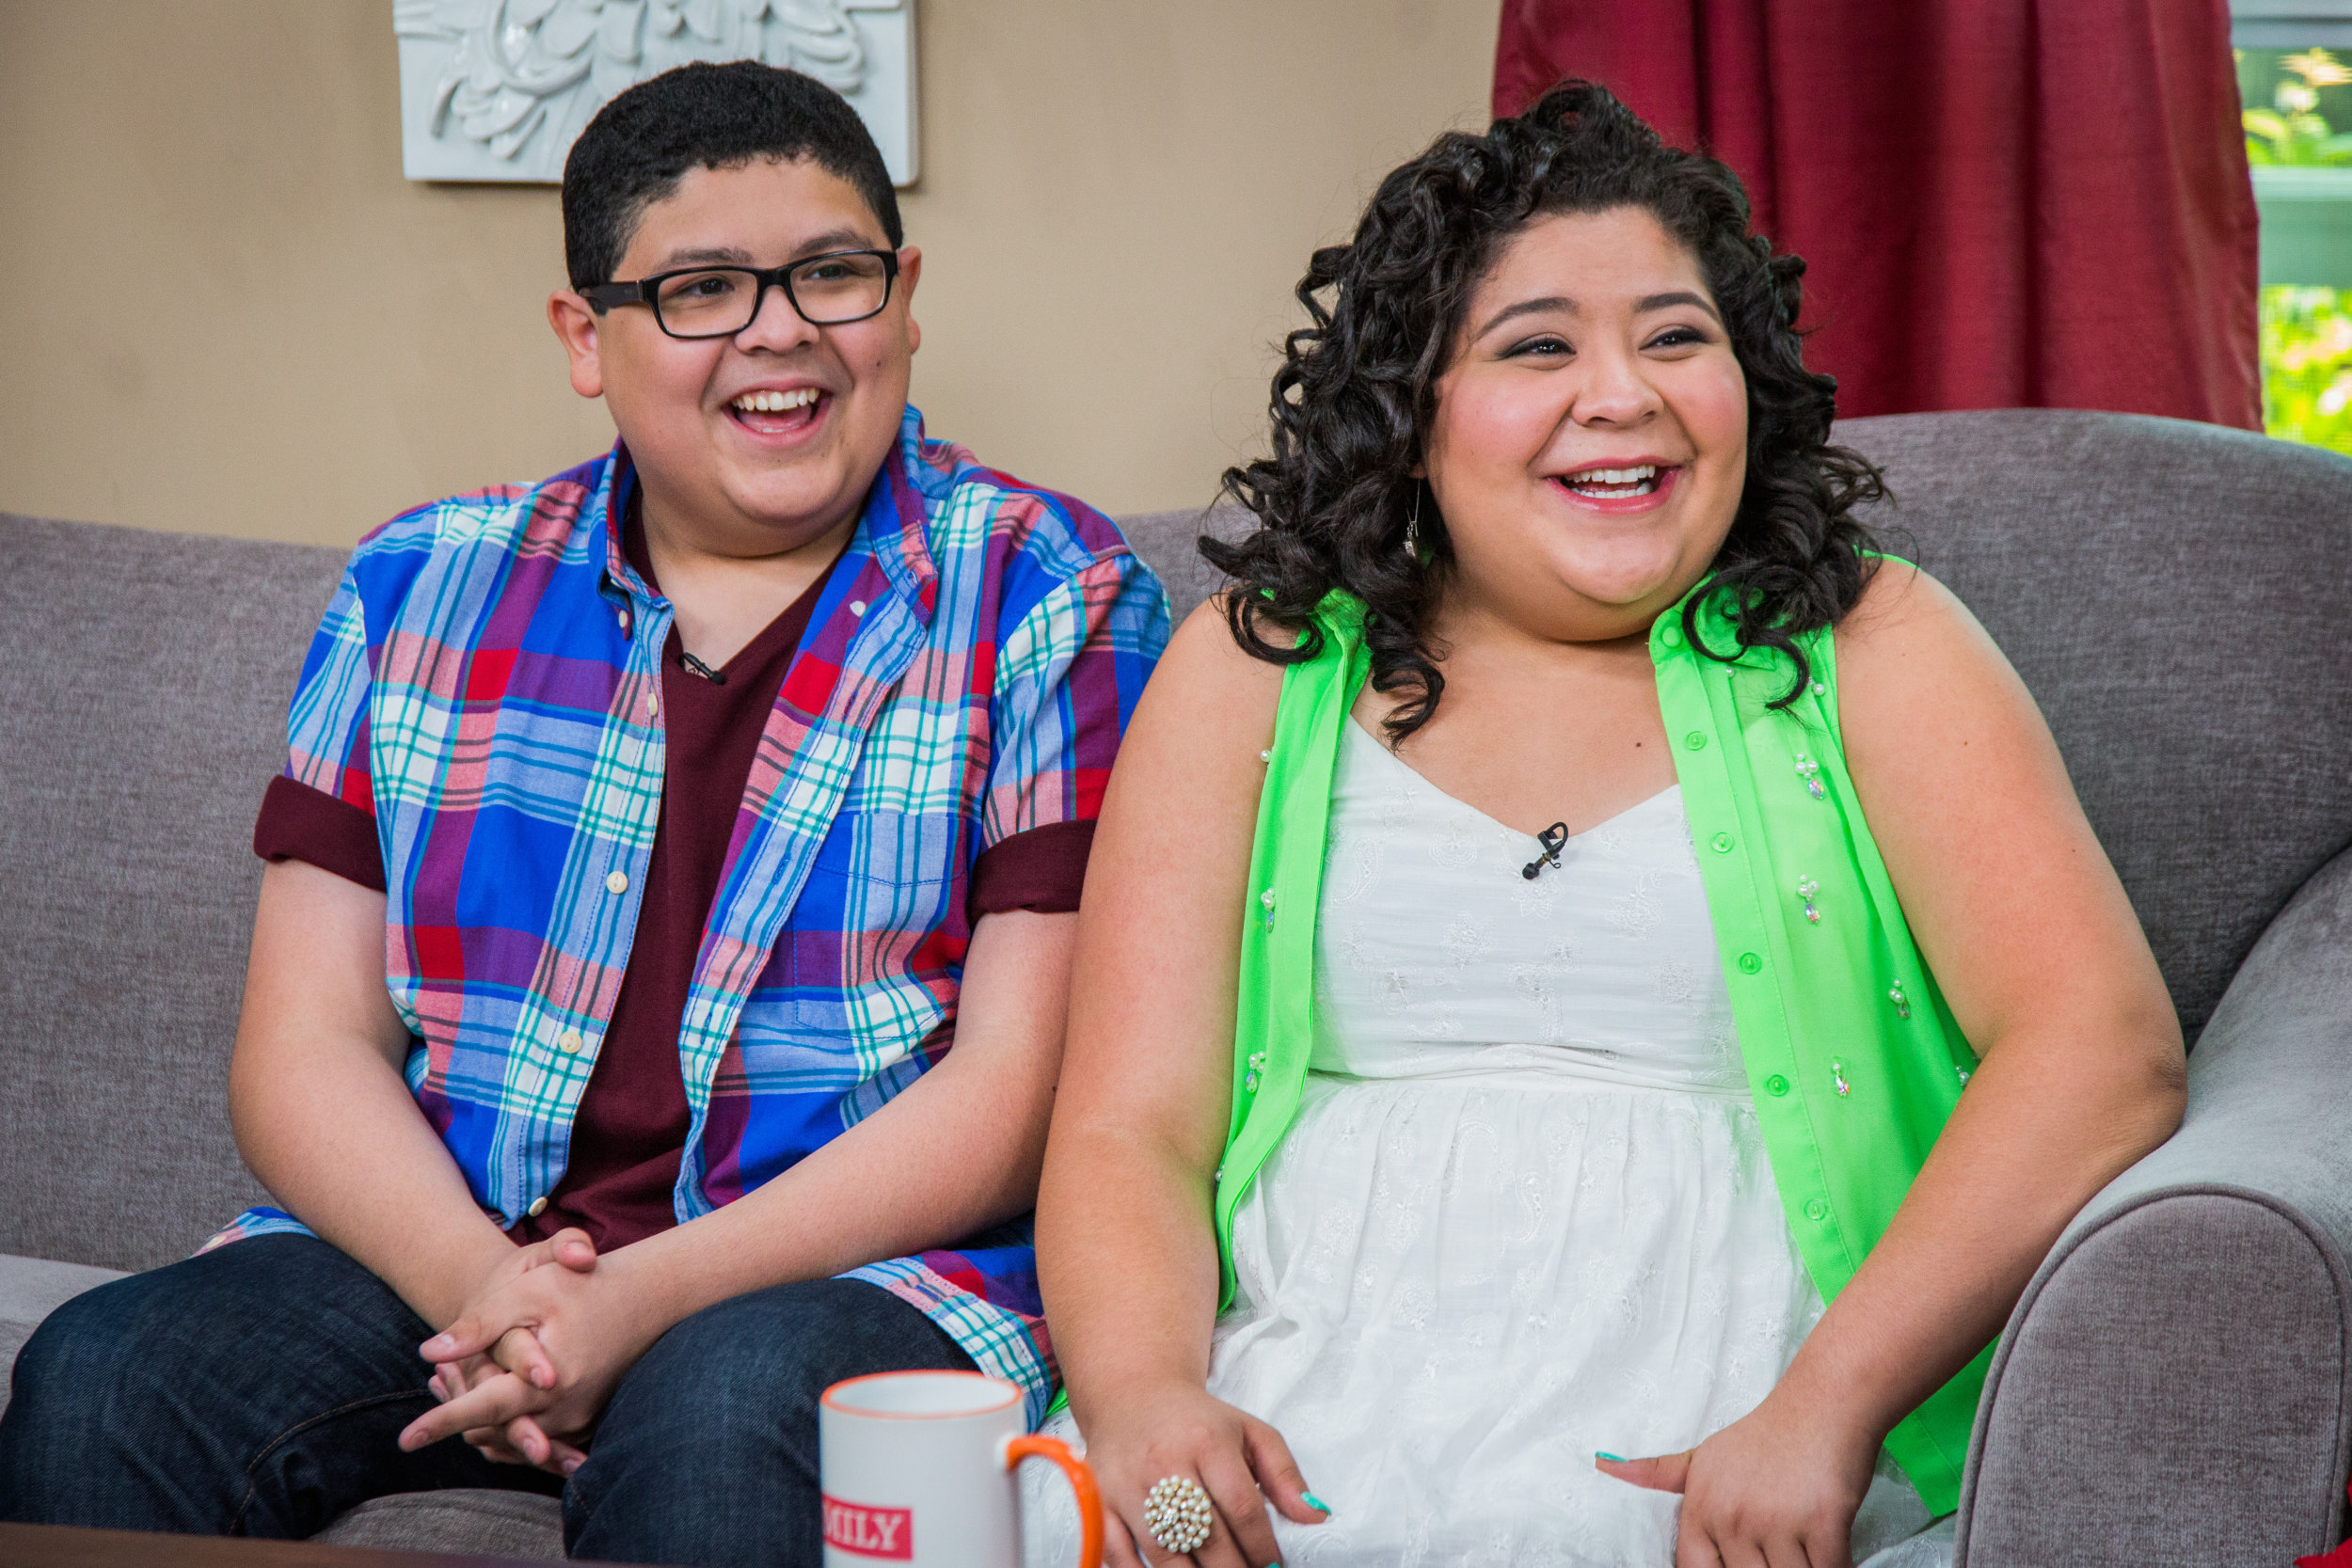 2017 2018 Bowl Schedule >> Rico and Raini Rodriguez Interview - Home & Family - Video | Hallmark Channel